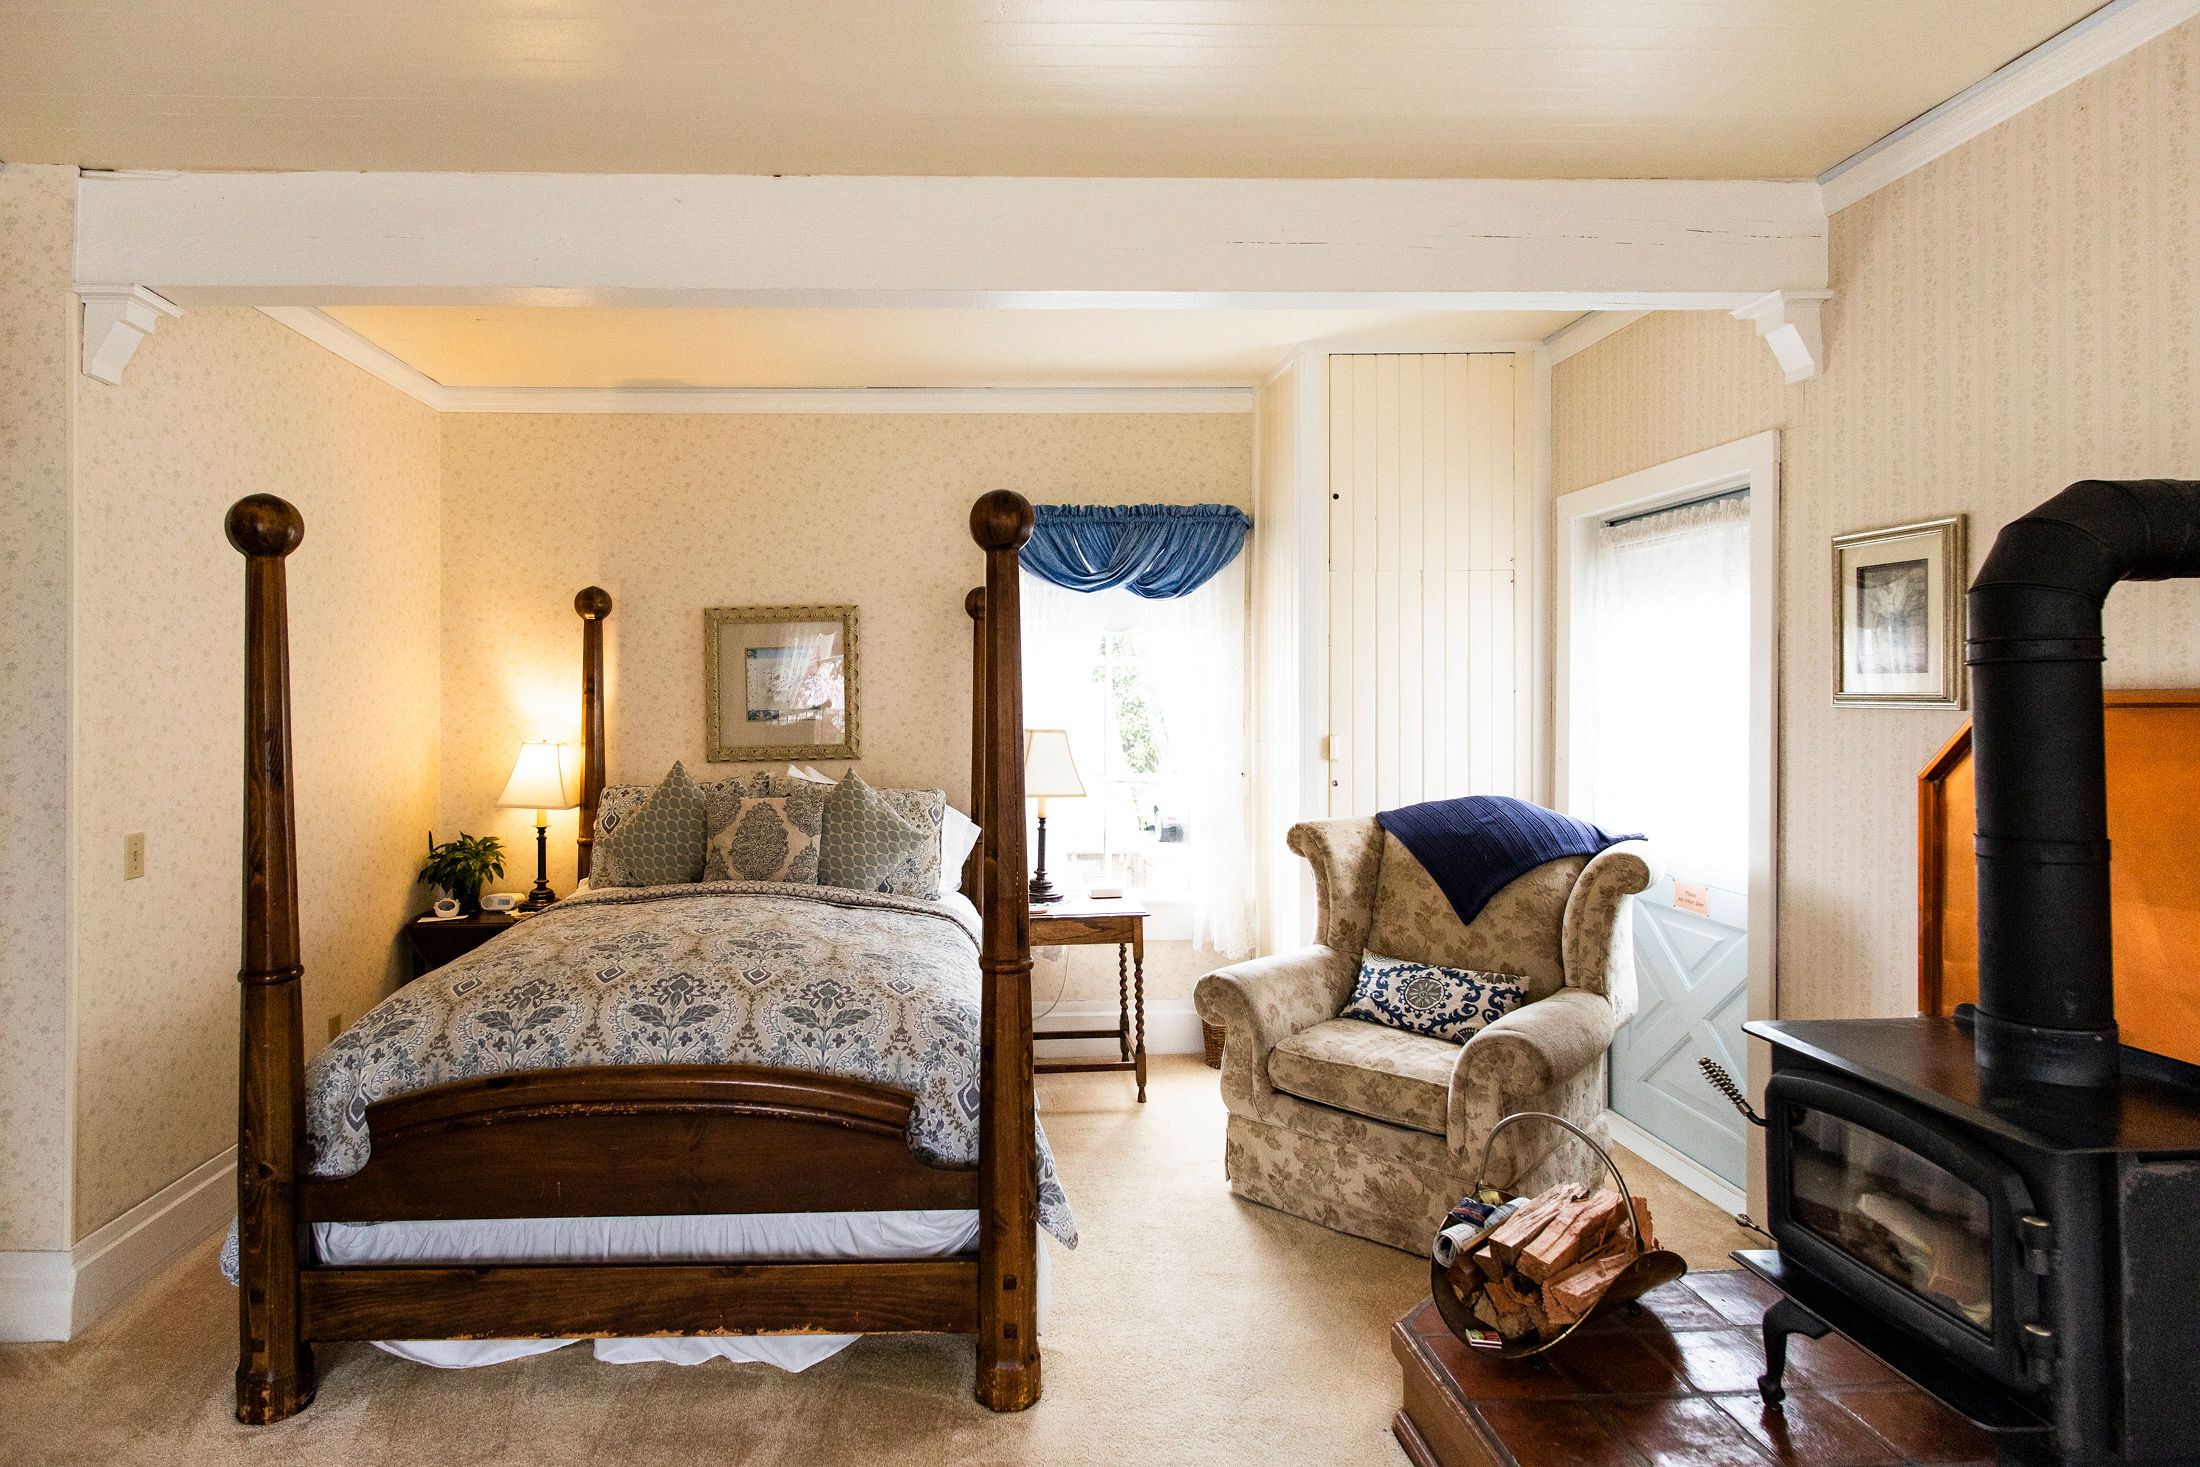 warm and cozy with antique furnishings in the WJ Wilson Room at The Headlands Inn in Mendocino, California